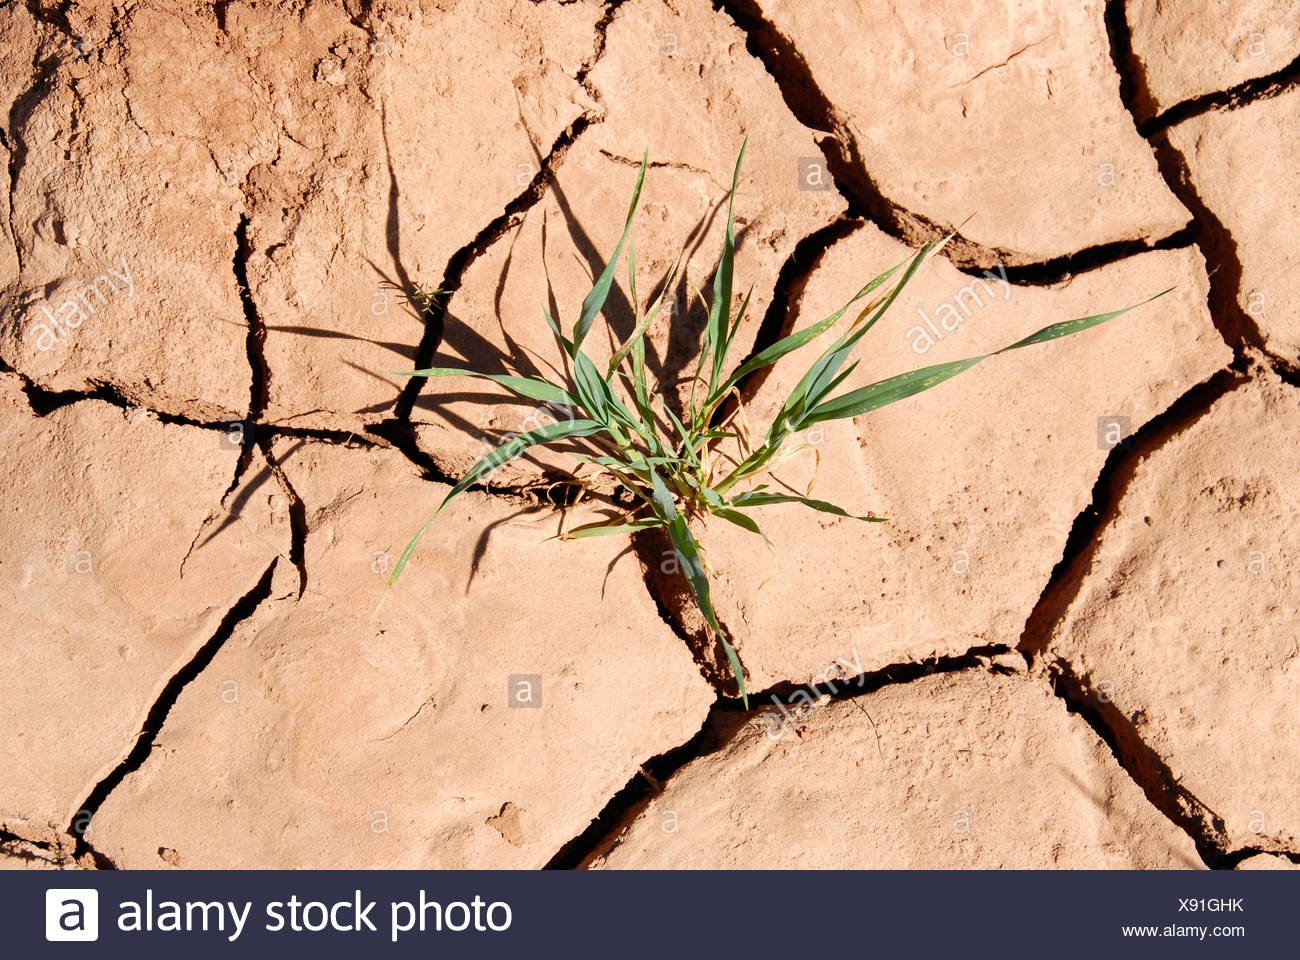 Green plant grows dry and torn open soil drought near Mhamid Morocco - Stock Image